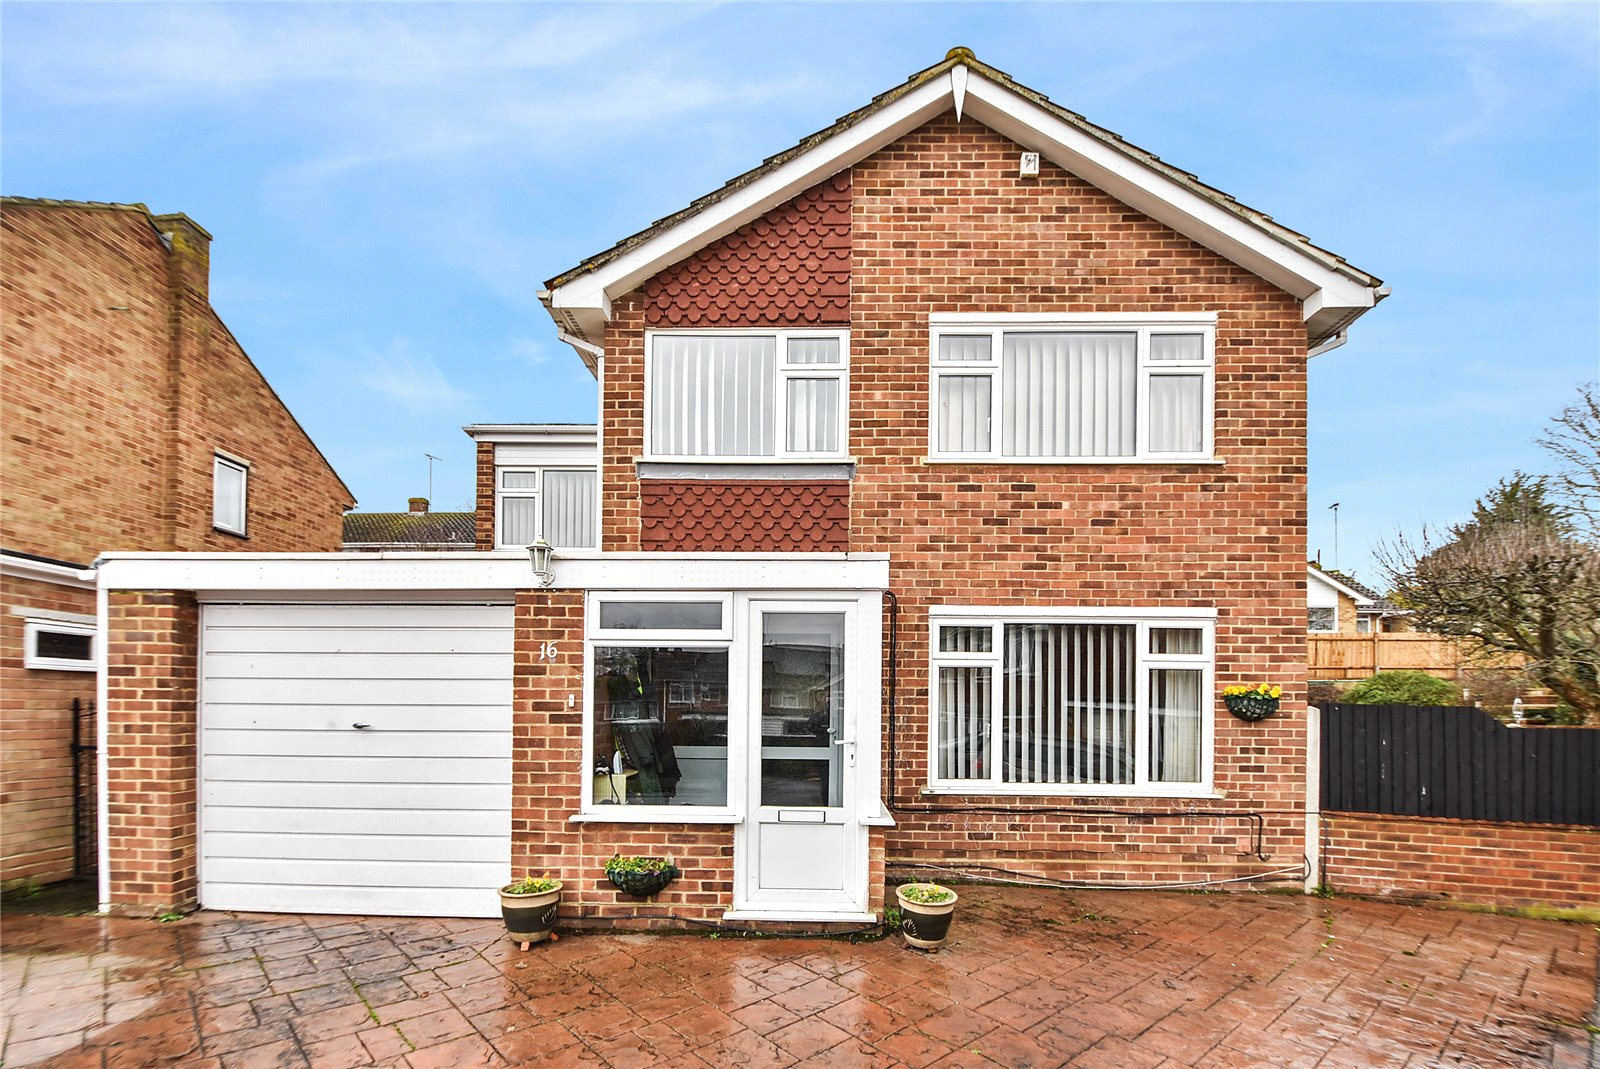 Cedar Drive, Sutton At Hone, Dartford, Kent, DA4